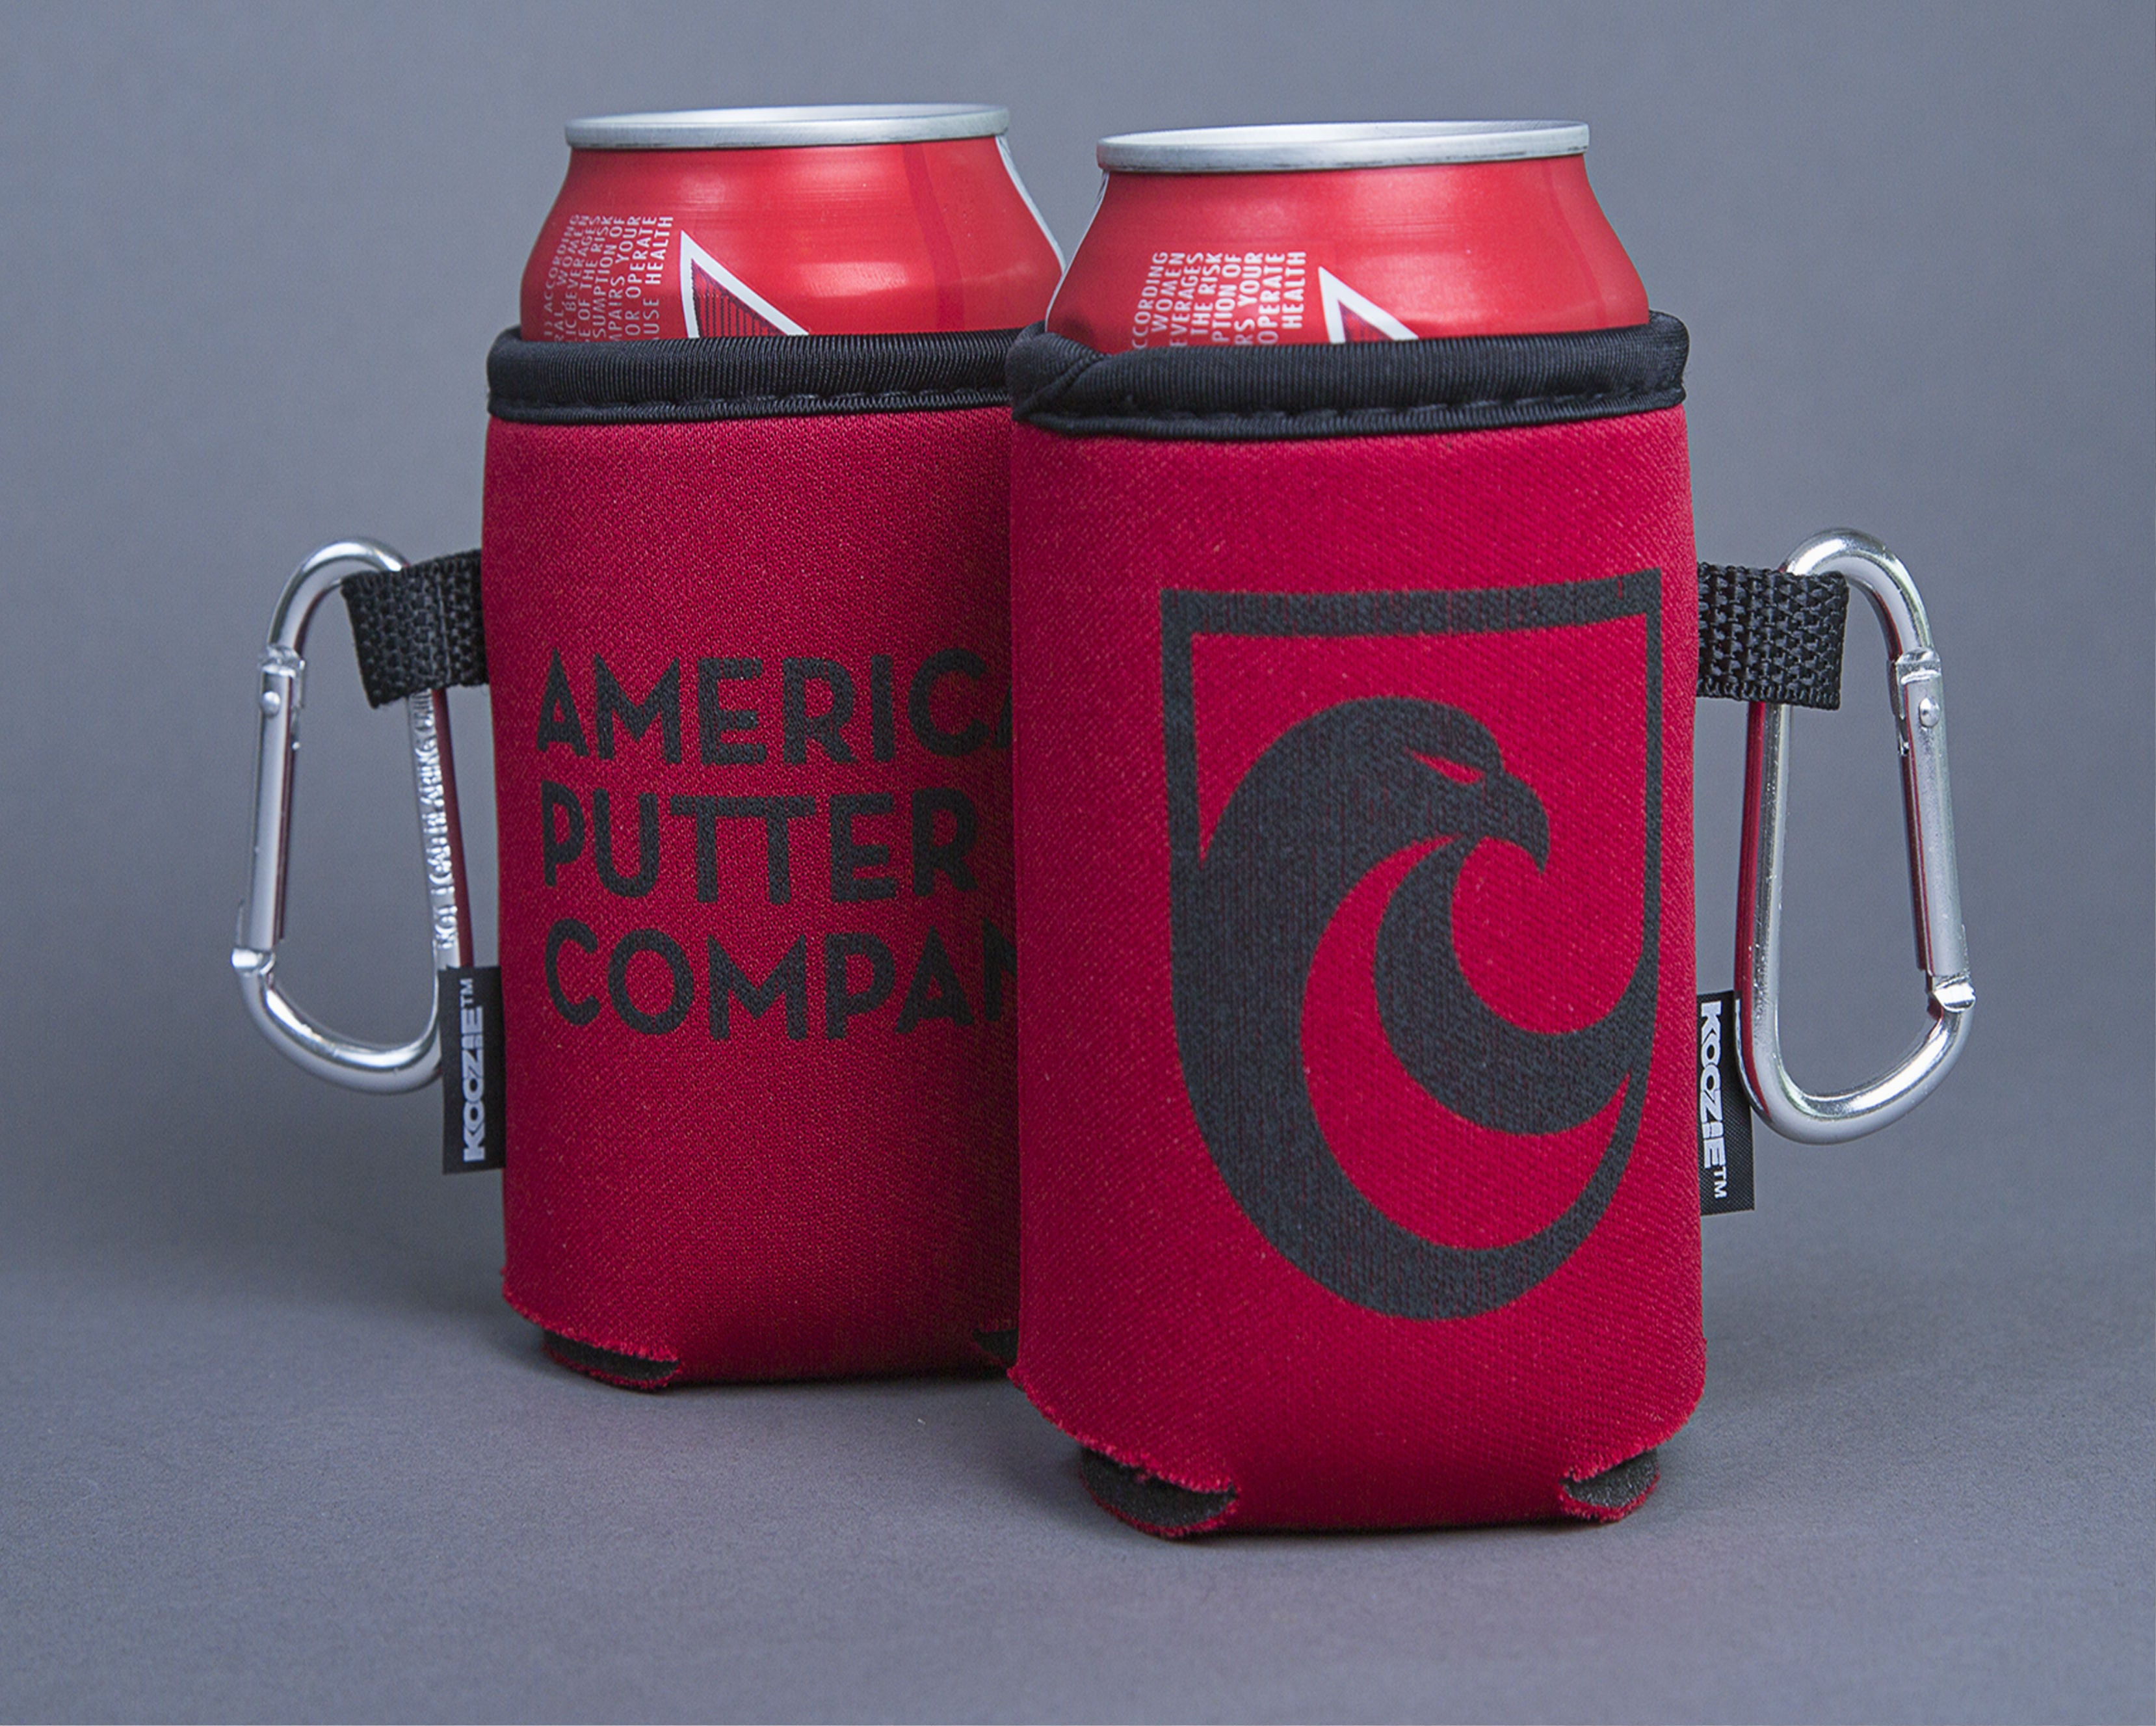 American Putter Company Over Engineered Koozie with Hook!